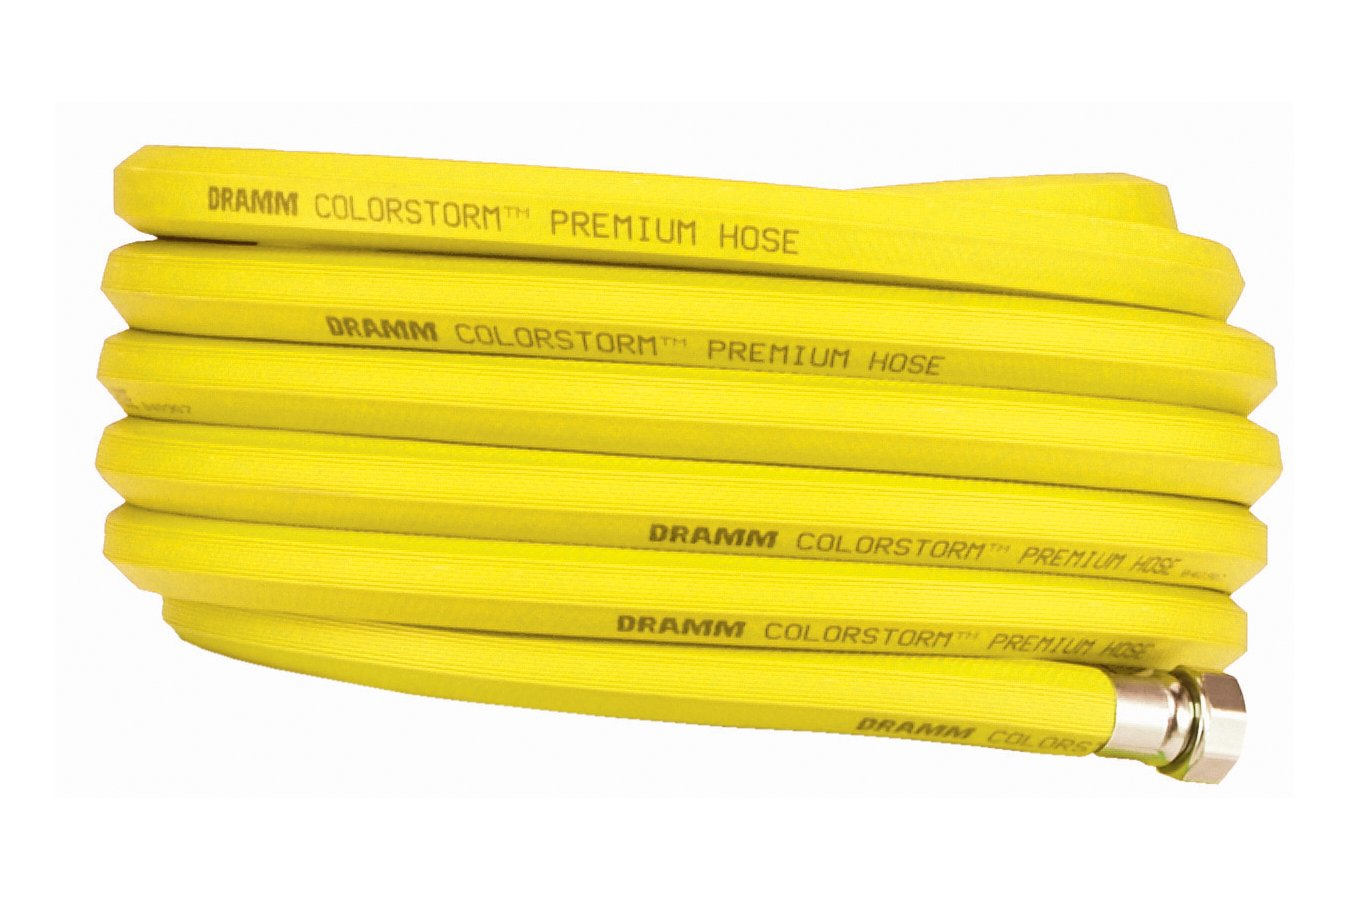 Dramm 17313 ColorStorm Premium Rubber Hose, 3/4'' x 100', Yellow by Dramm